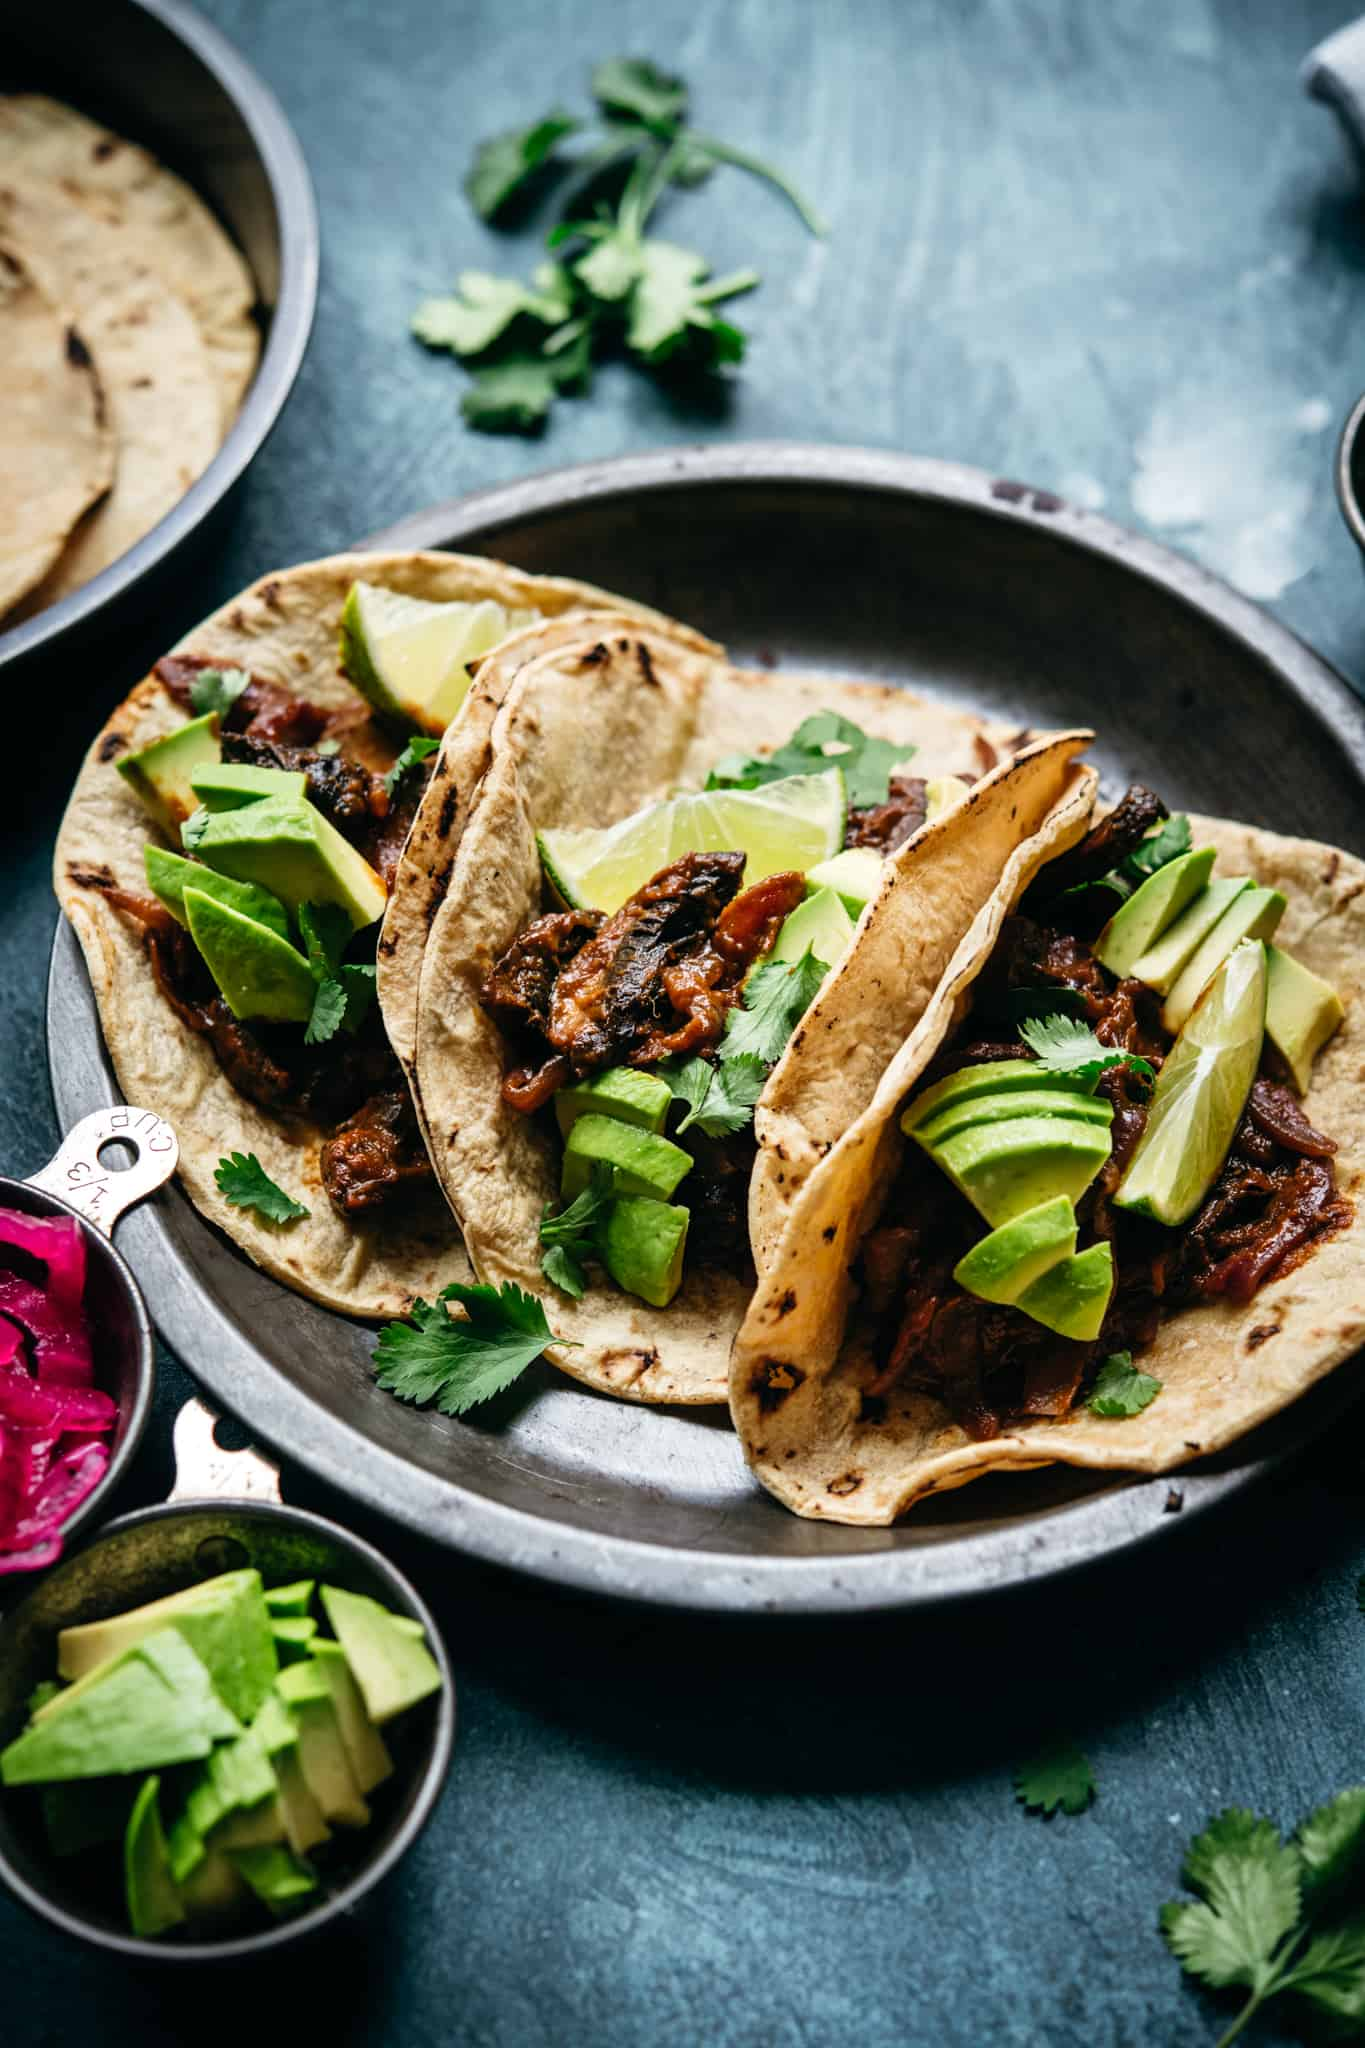 side view of vegan mushroom al pastor tacos in charred tortillas with avocado